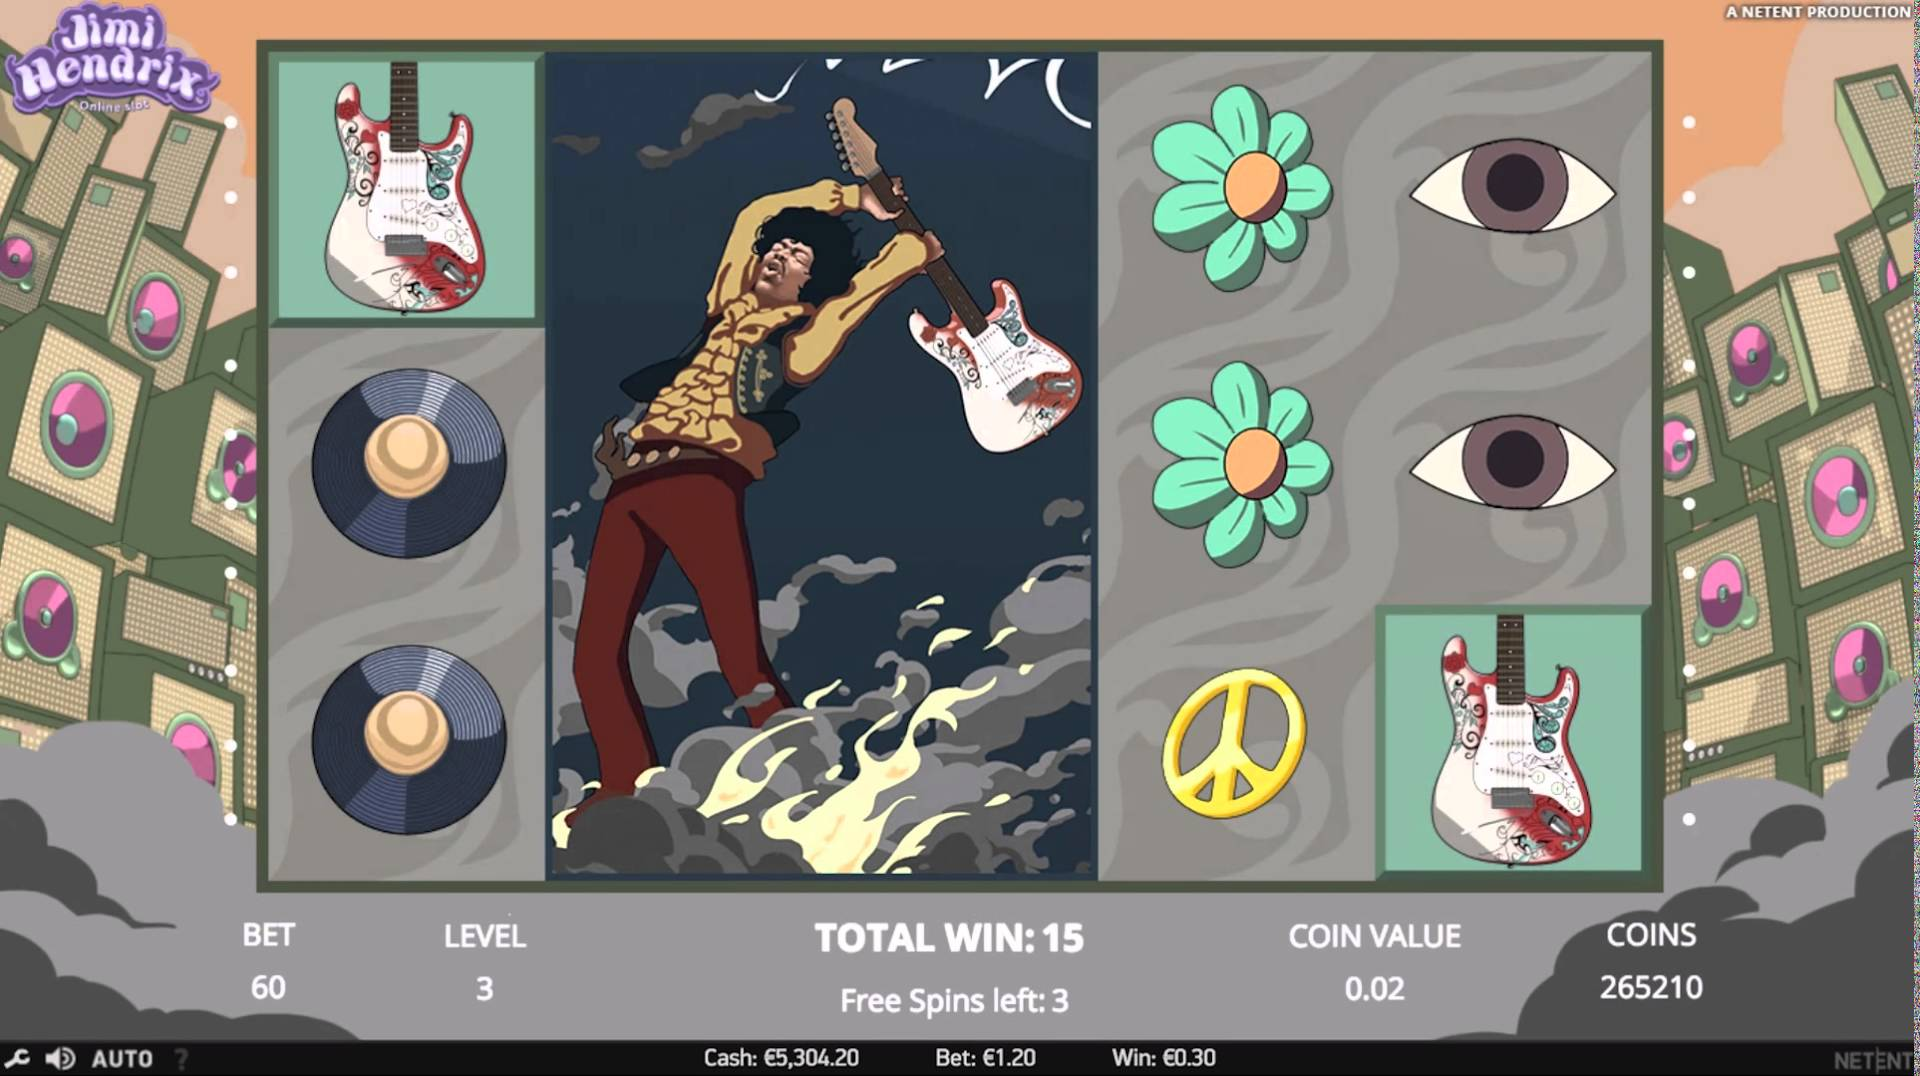 jimi hendrix slots gameplay